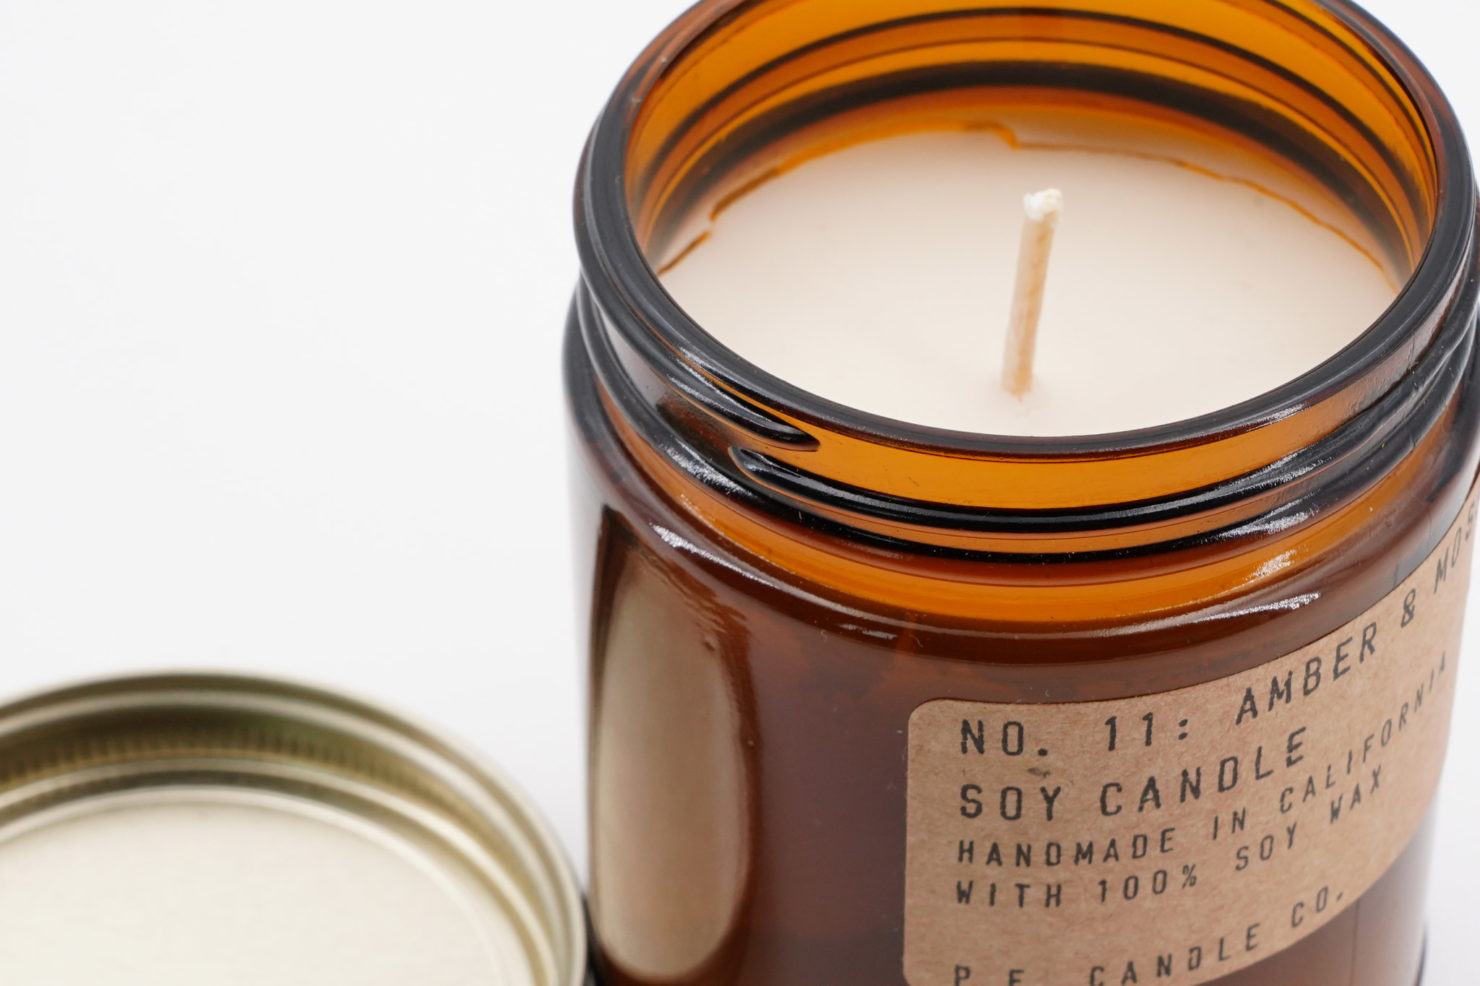 SC-AMBER & MOSS - P.F. CANDLE CO.